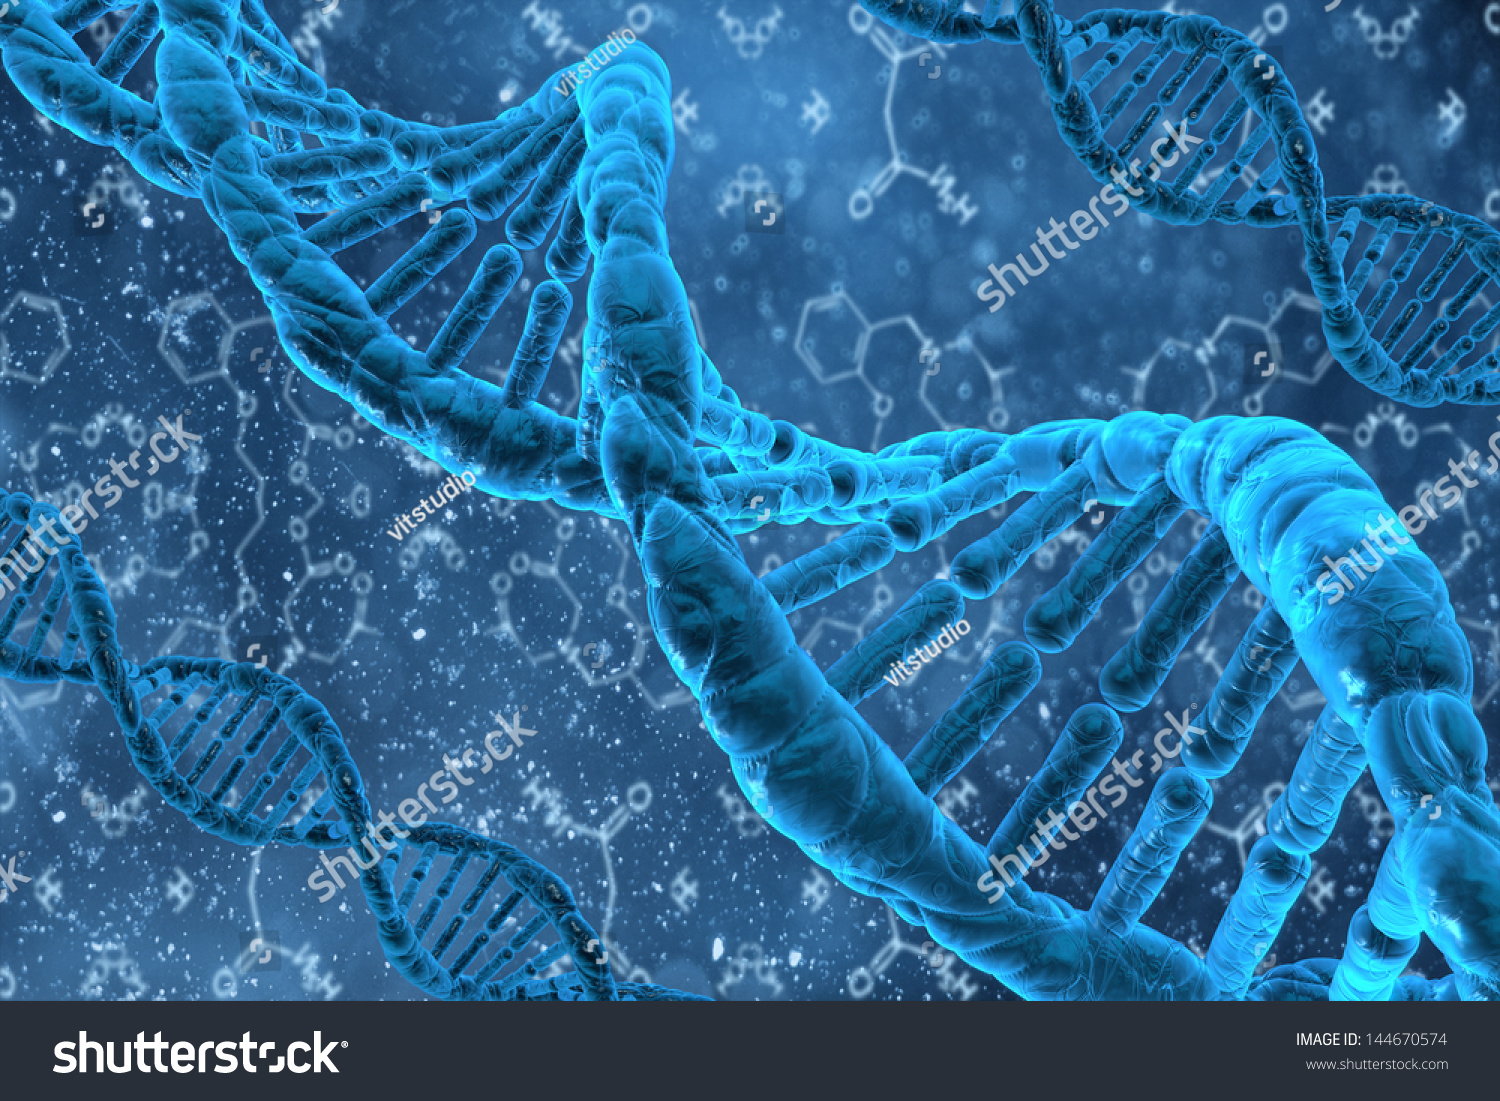 Human Dna Structure Of The Cell Stock Photo